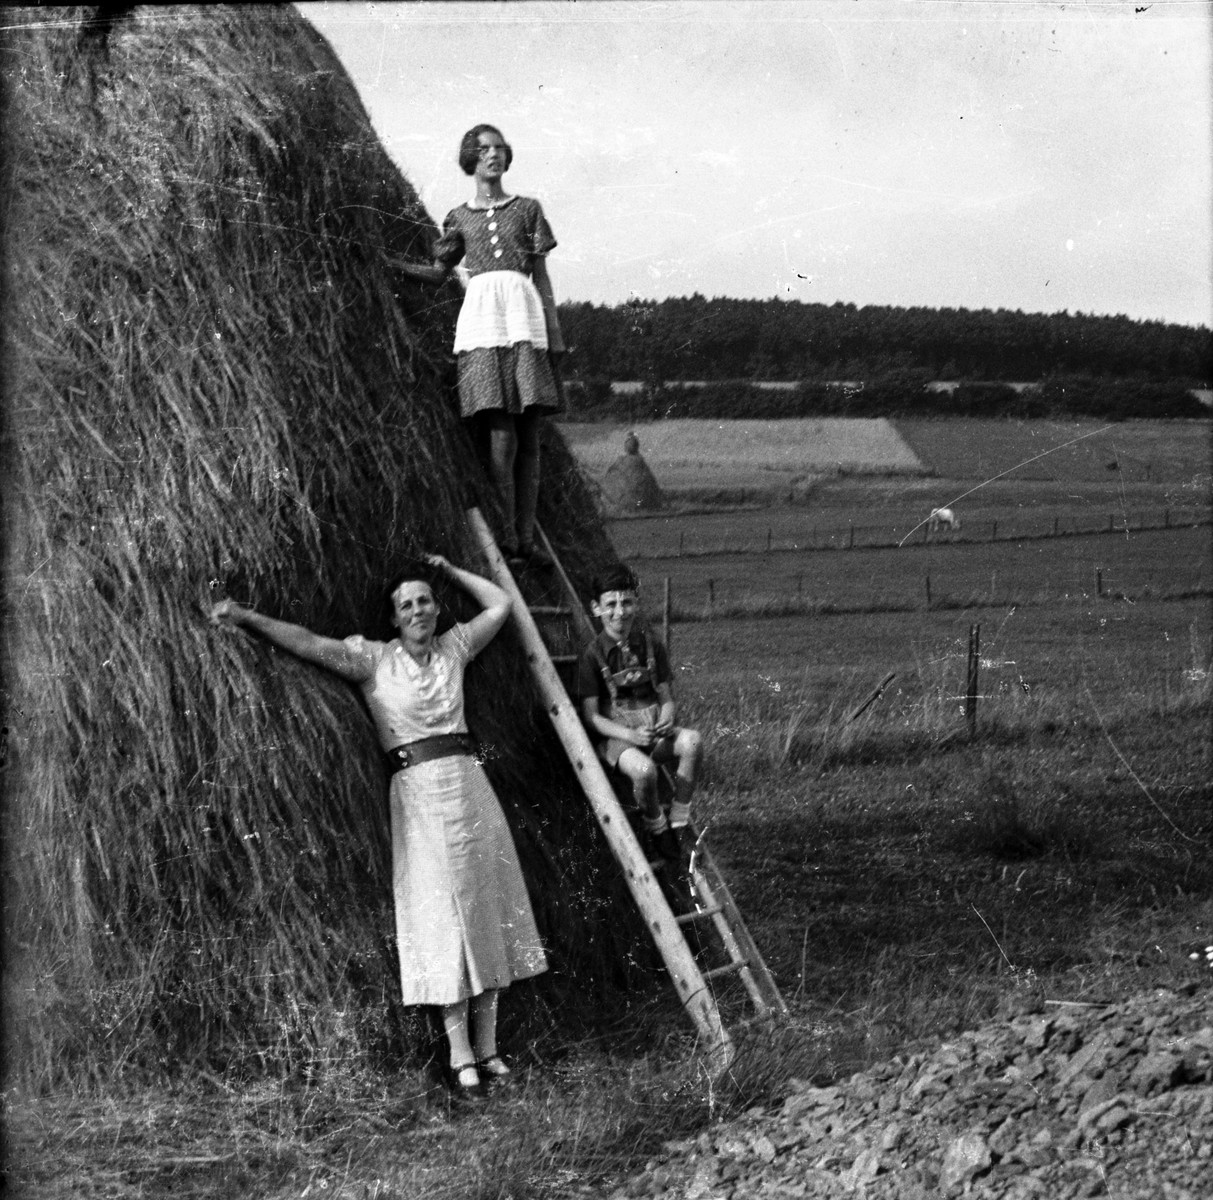 Rosa Lewinnek poses with her two children, Anne Laure and Arieh, next to a large haystack in a farm in Belgium.